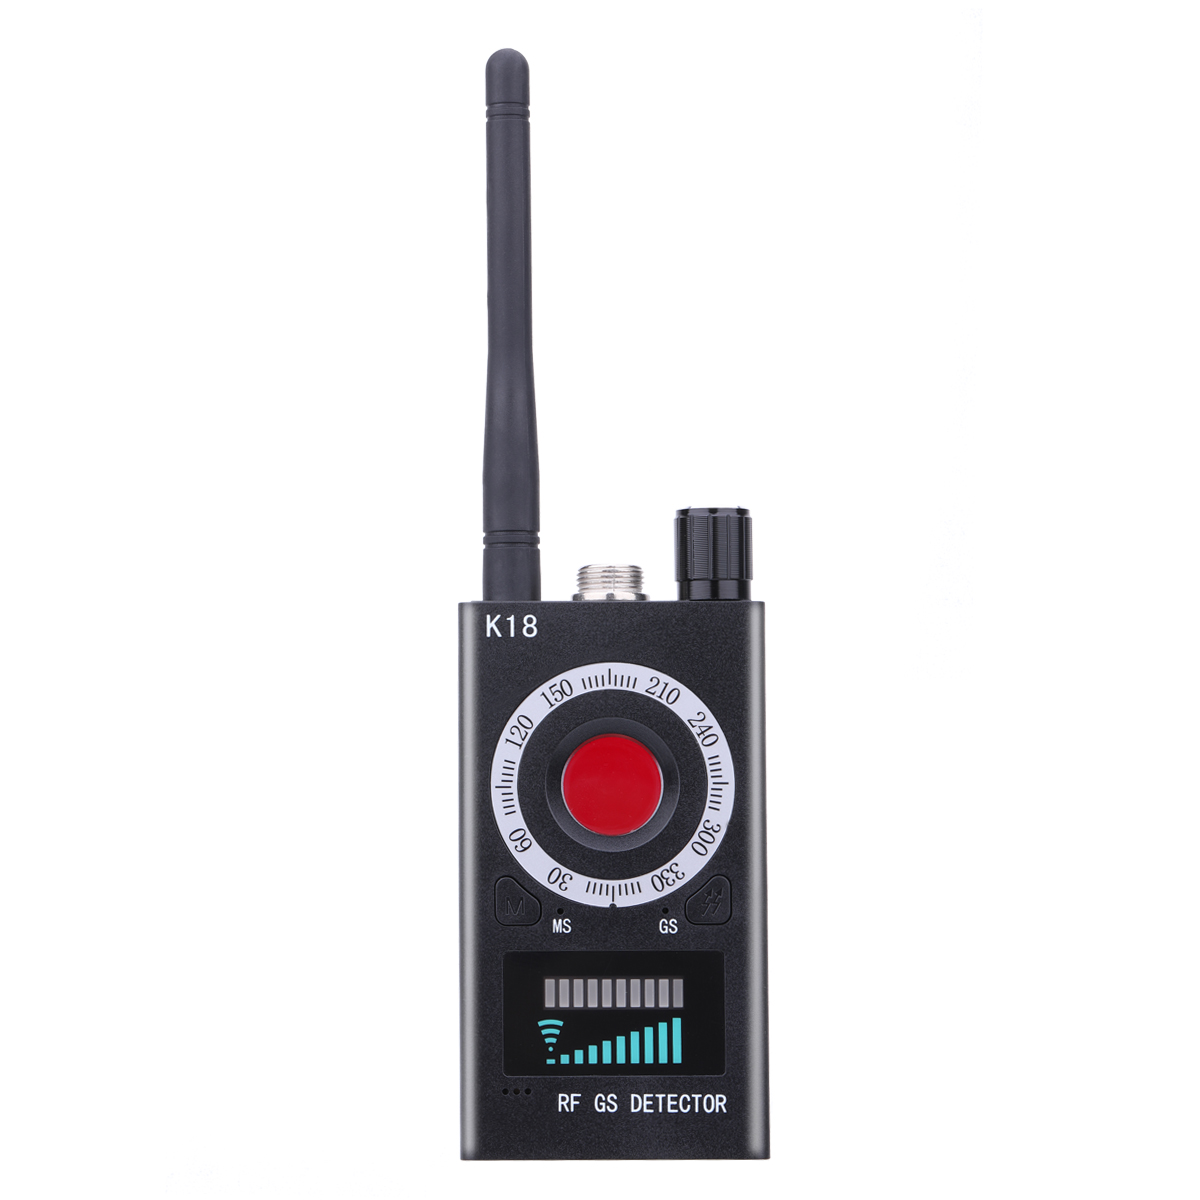 Details about For K18 Bug Anti-spy Detector Camera RF Signal GSM Audio Bug  Finder GPS Scan